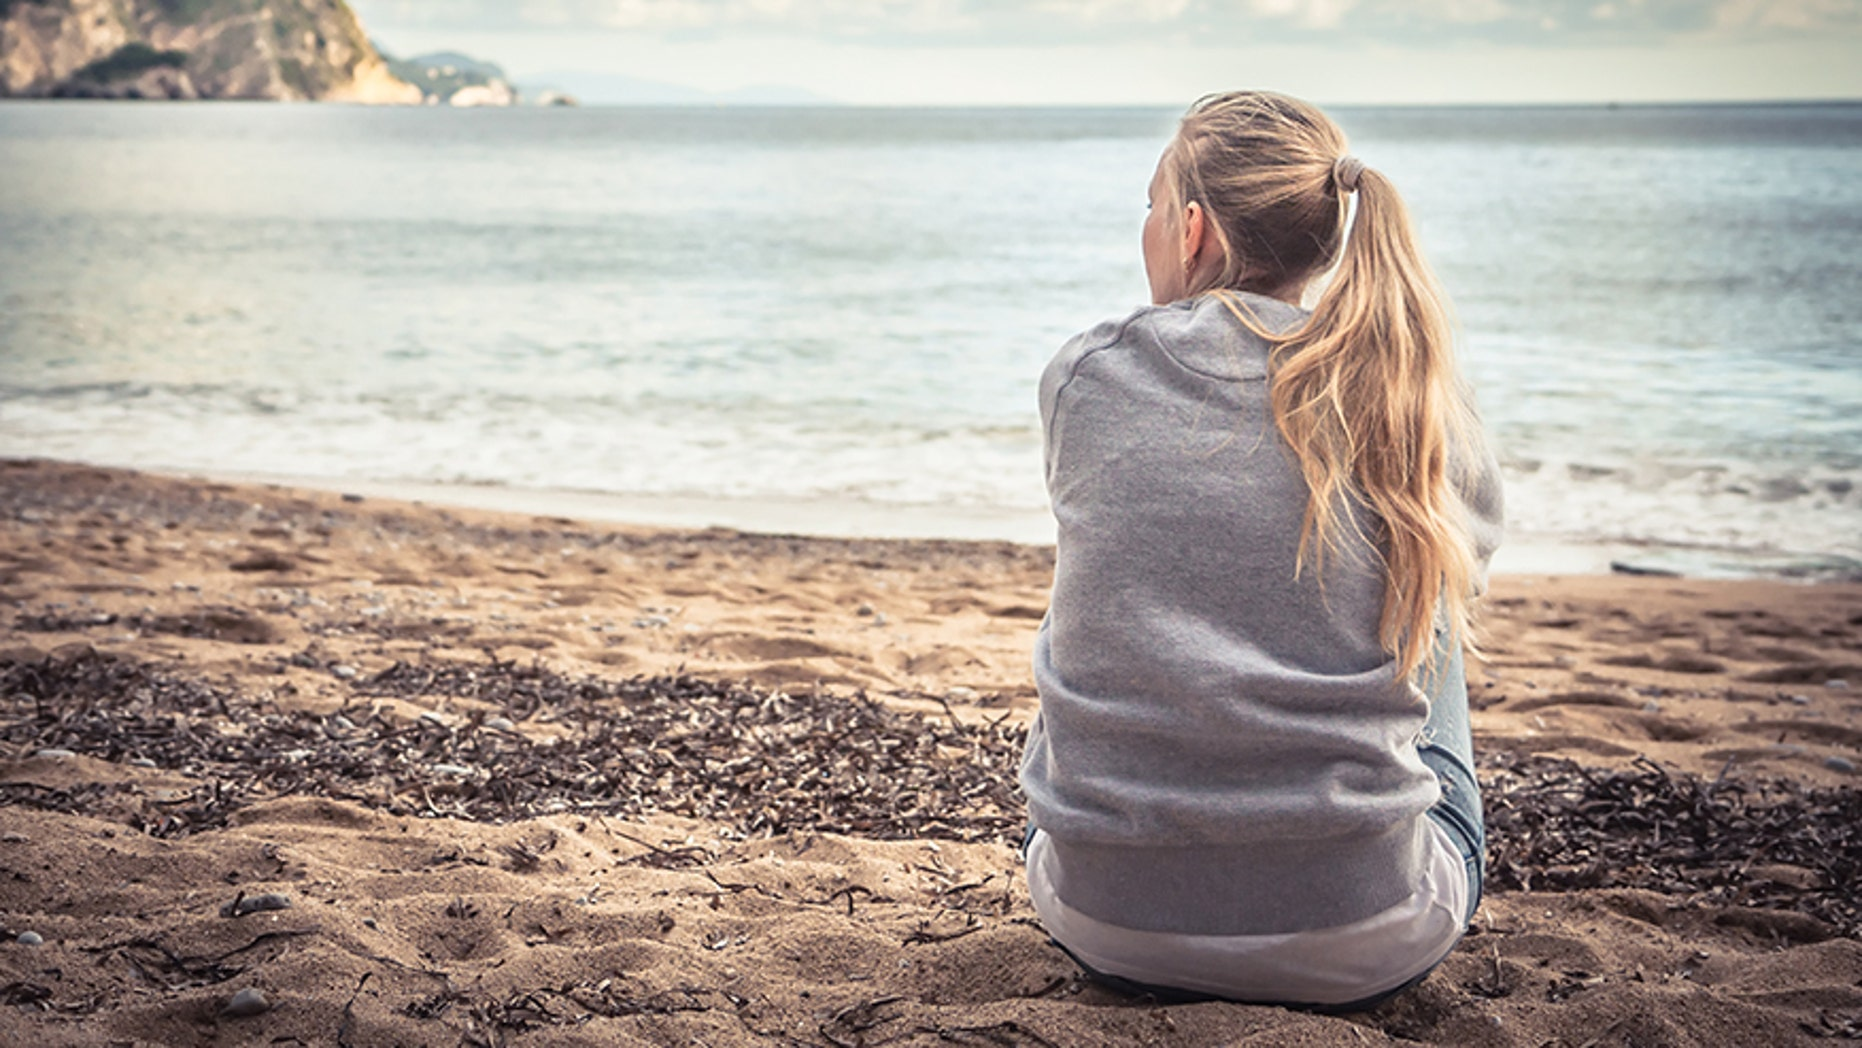 Suicide attempts among young American adults are on the rise, study showed.